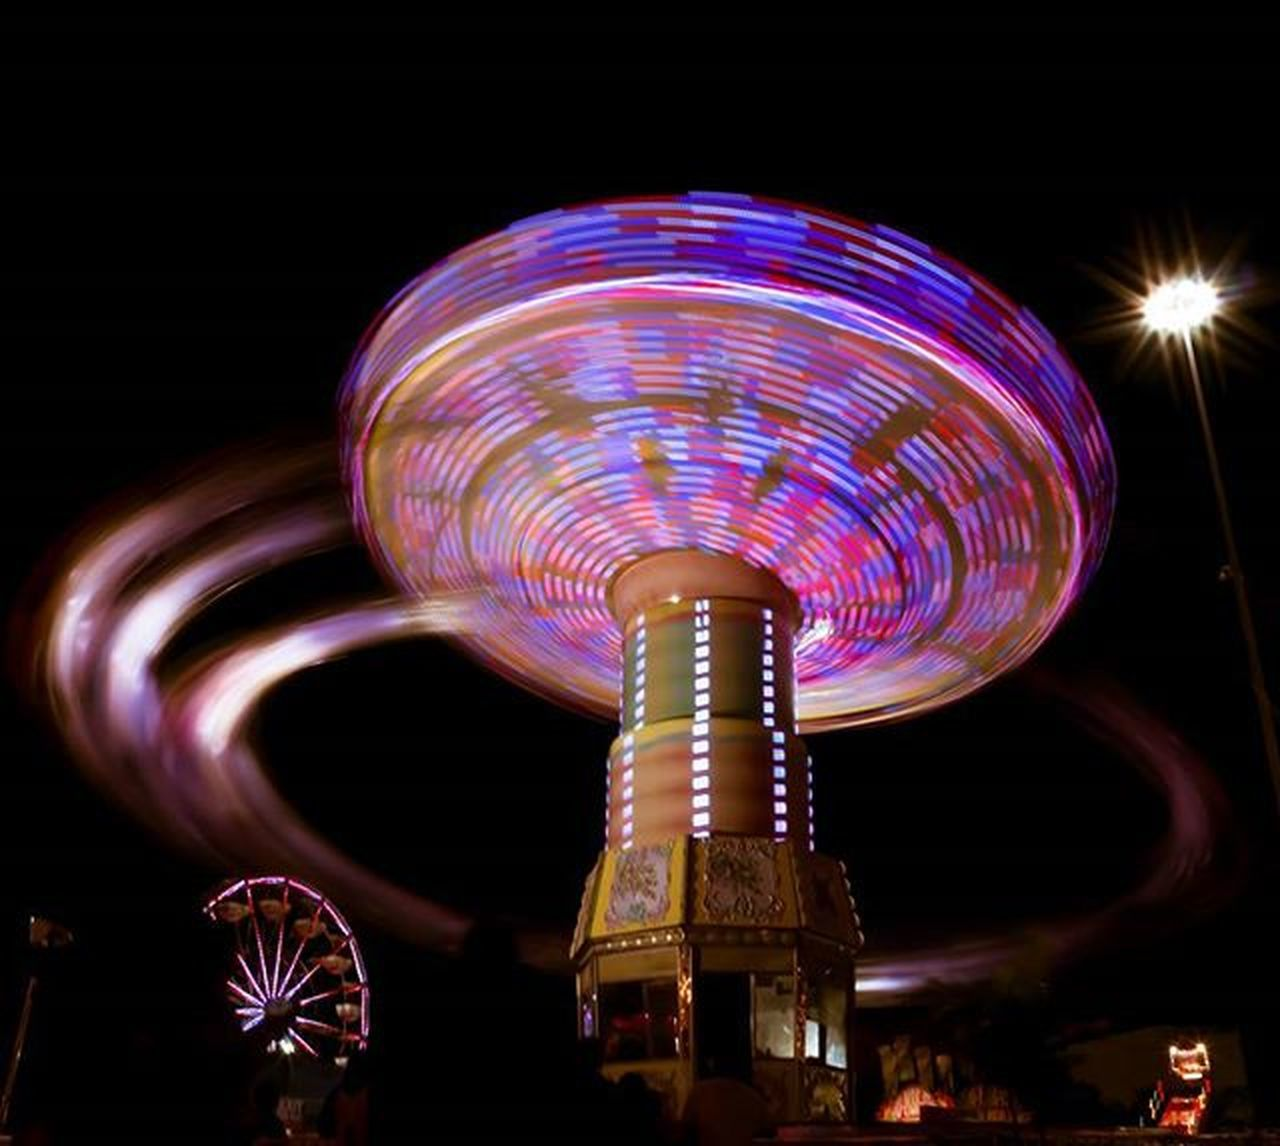 amusement park, night, arts culture and entertainment, amusement park ride, ferris wheel, illuminated, carousel, fun, enjoyment, traveling carnival, multi colored, blurred motion, long exposure, motion, merry-go-round, leisure activity, sky, low angle view, outdoors, black background, nightlife, no people